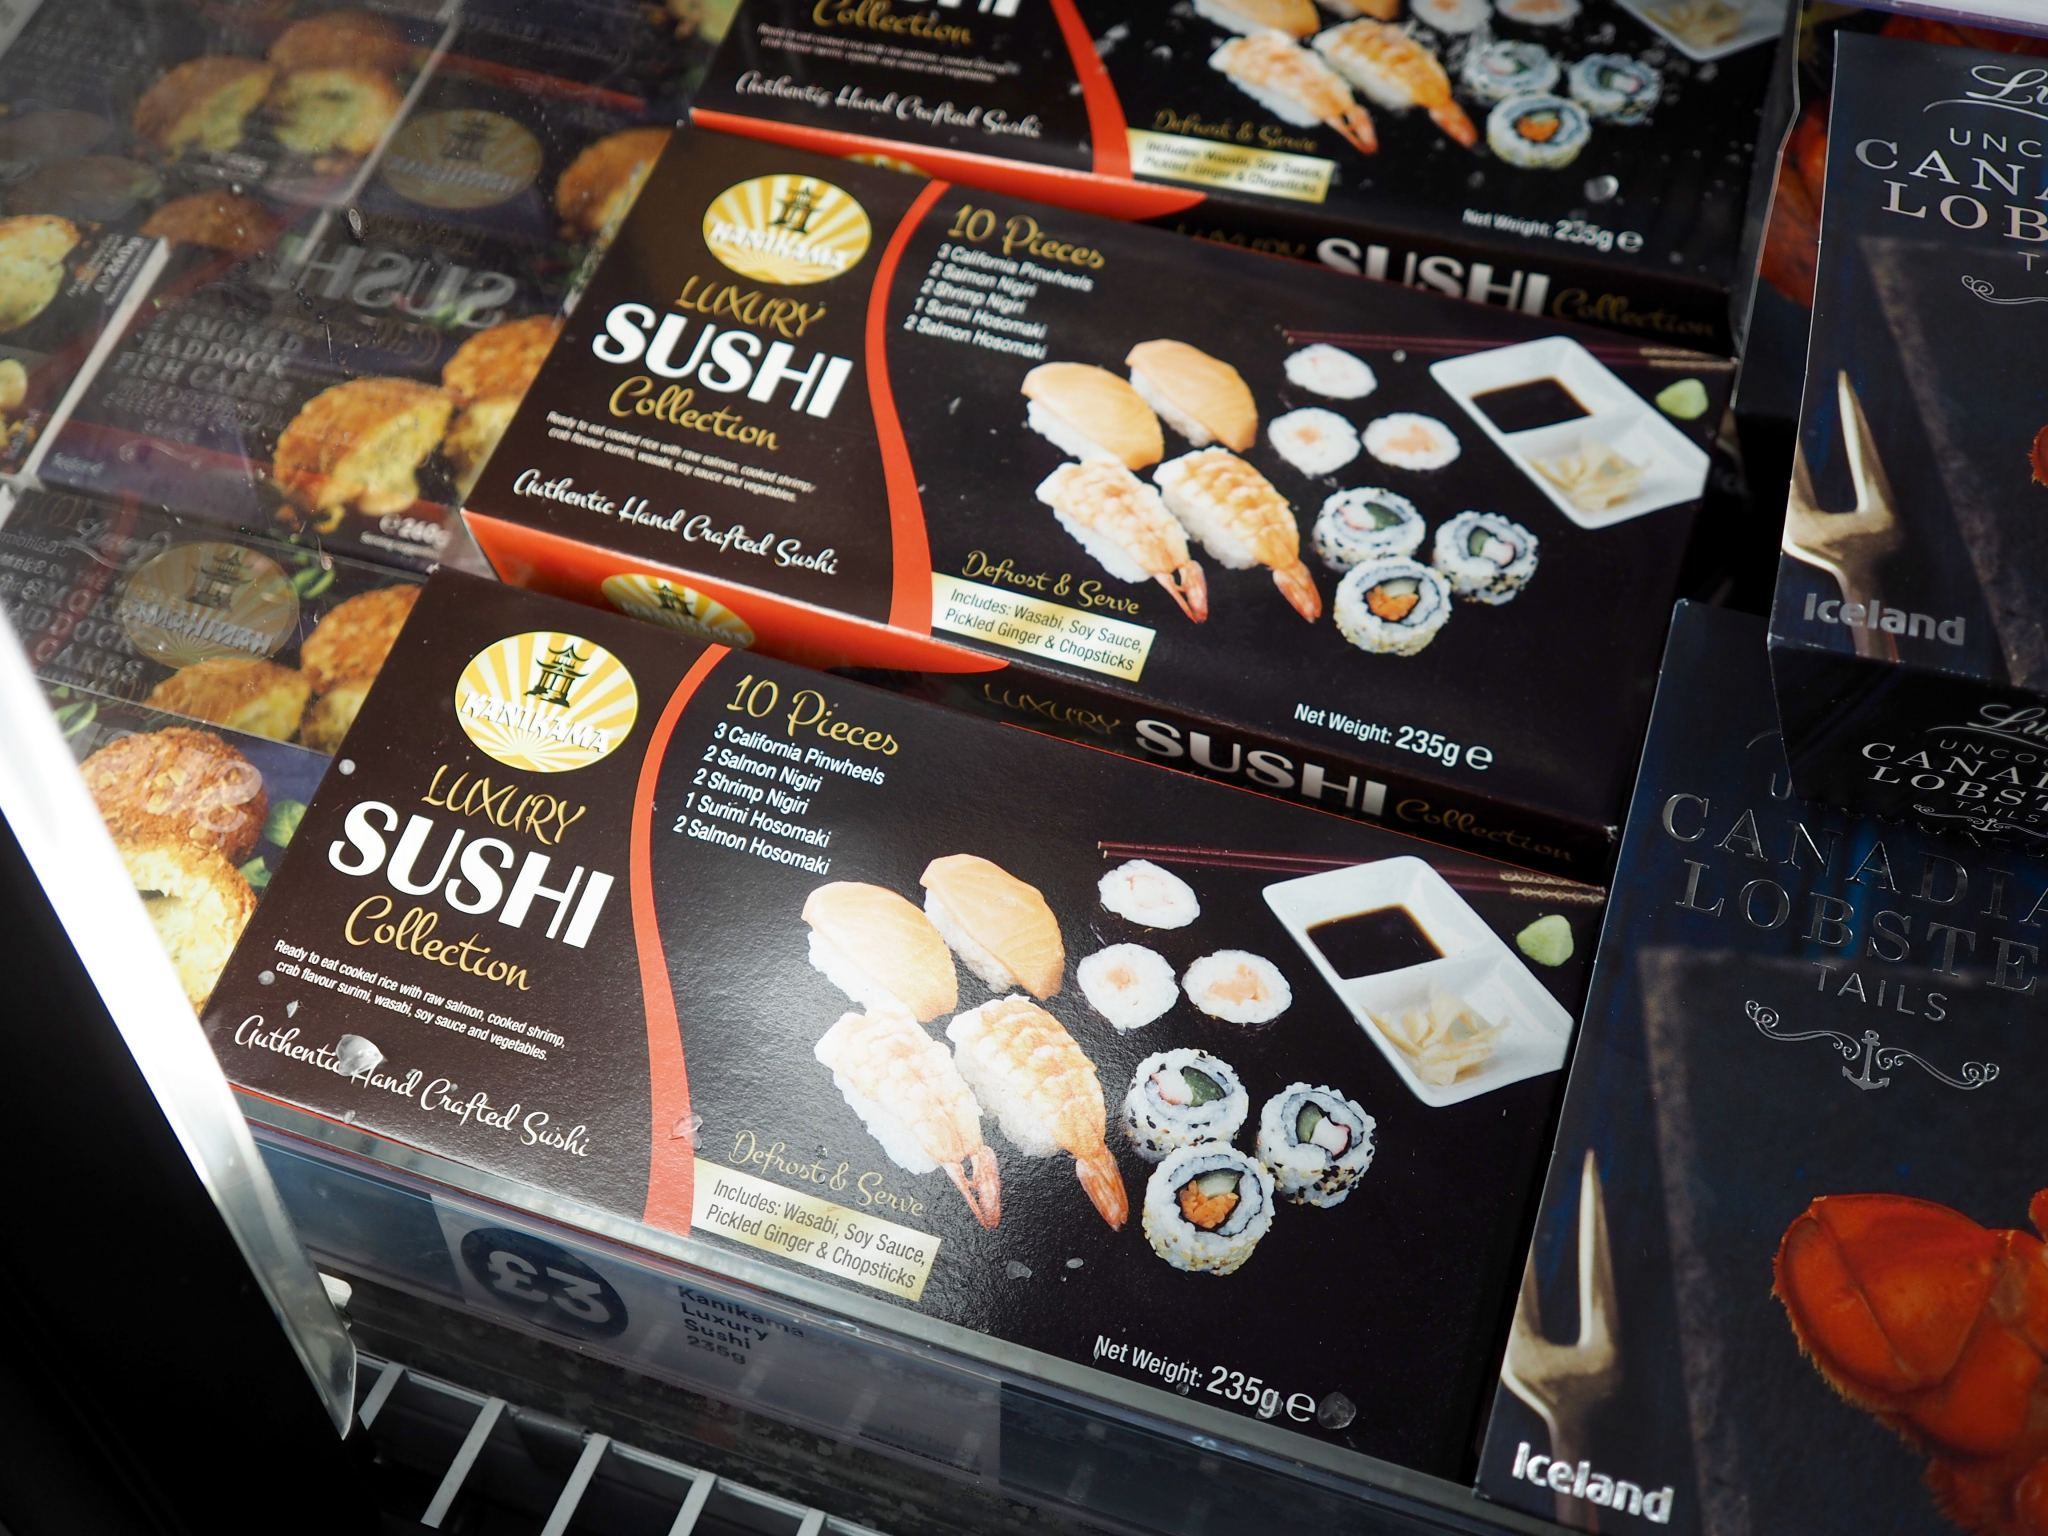 Cocoa Chelsea Iceland School of fish sushi frozen